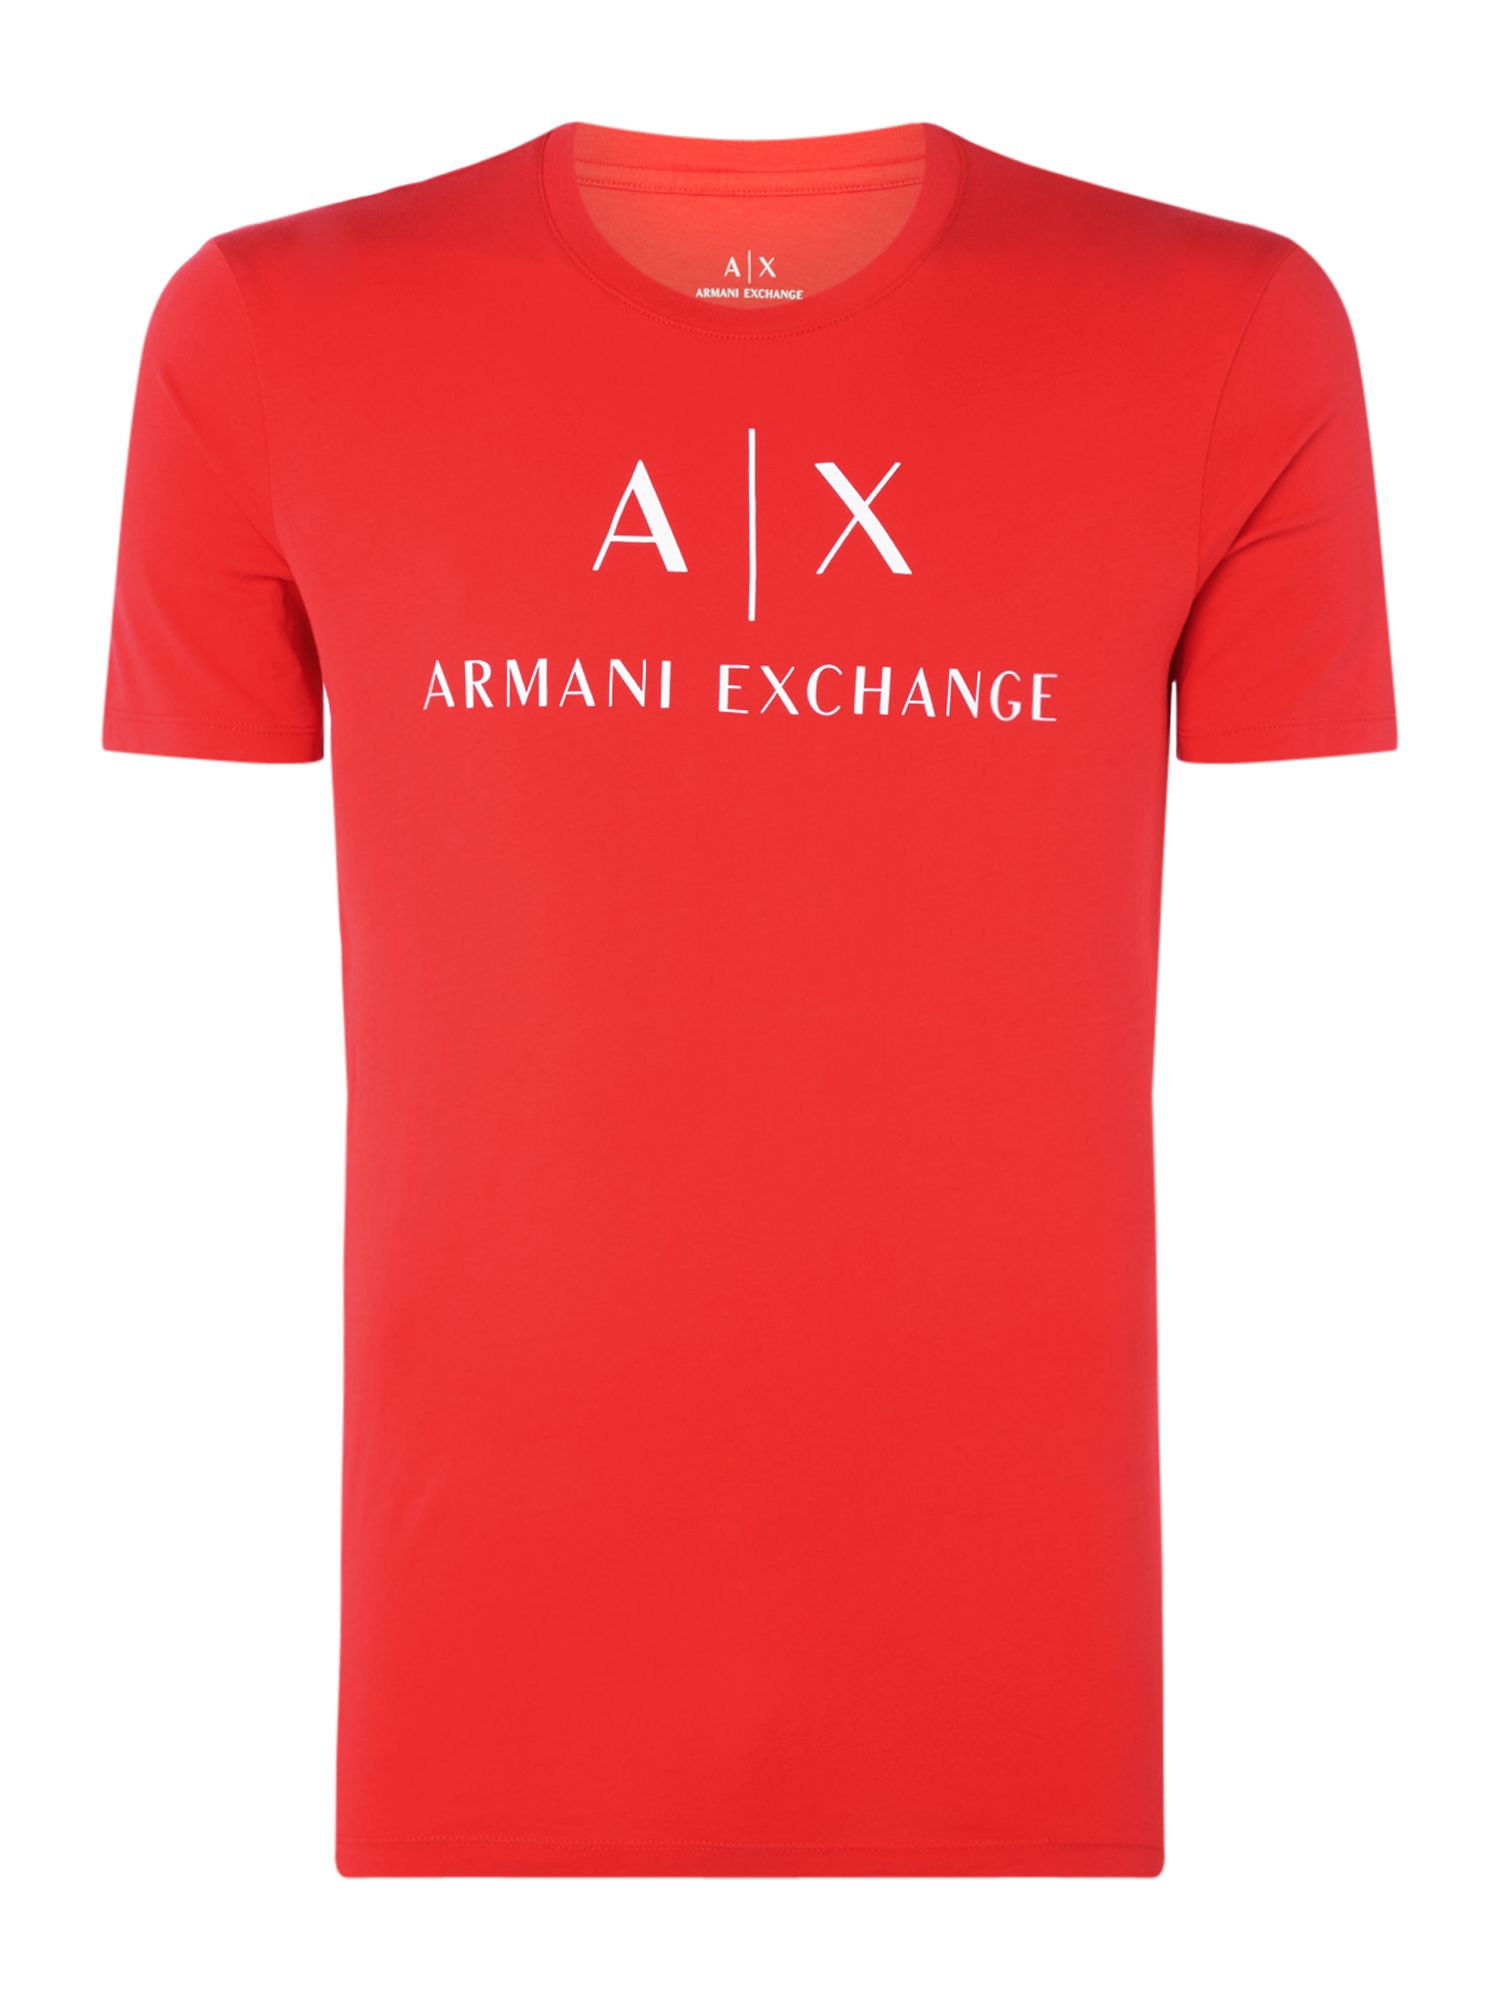 Men's Armani Exchange AX Logo Tshirt, Red